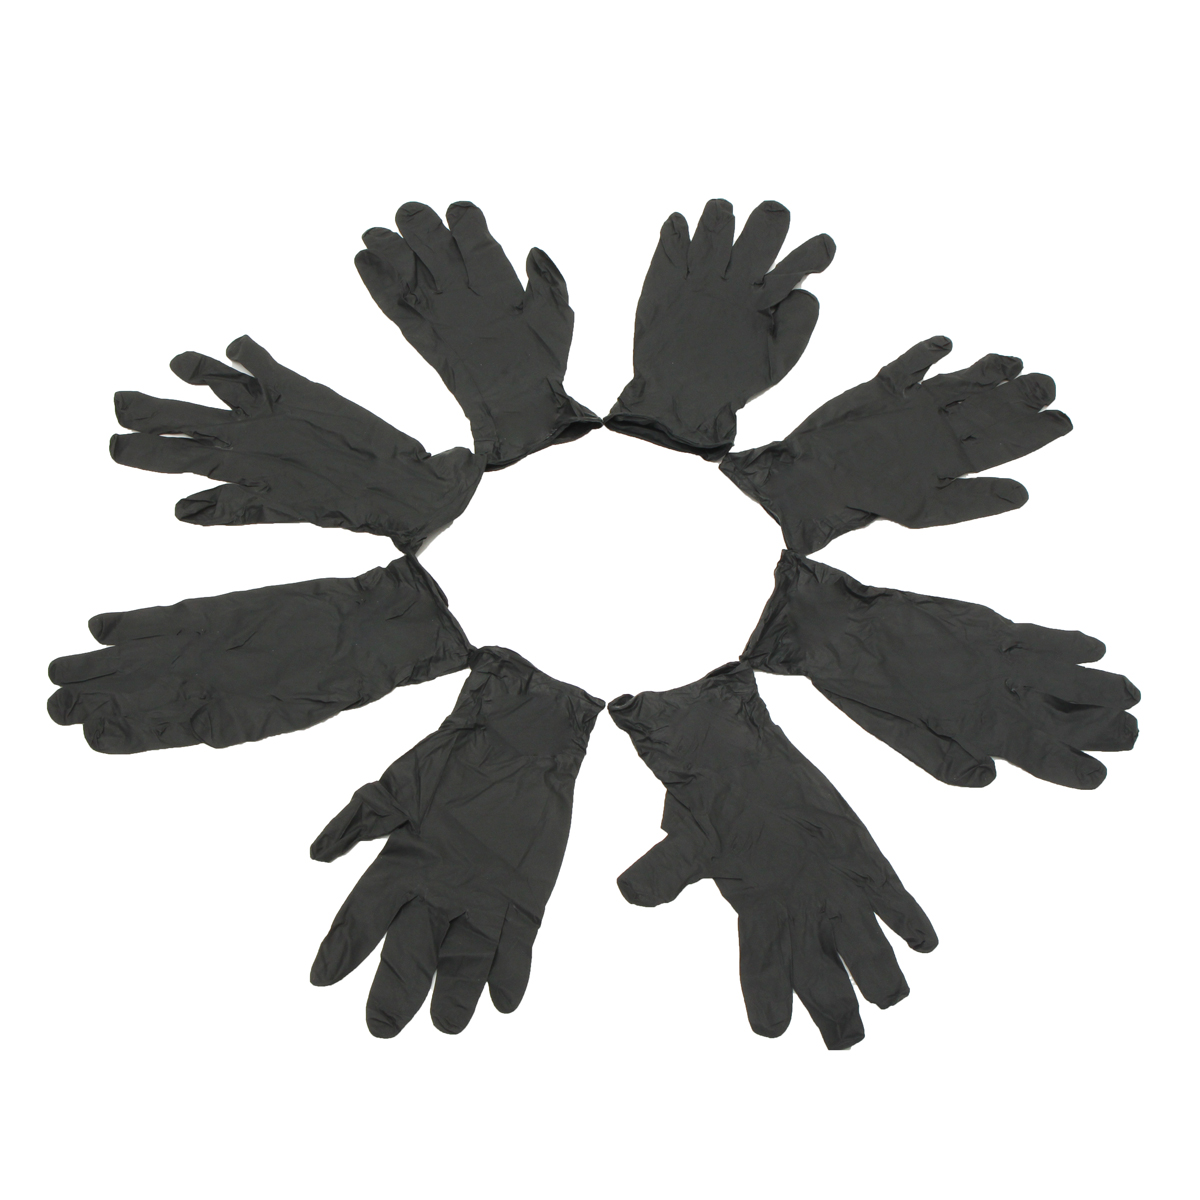 100Pcs S/M/L Black Latex Disposable Gloves Tattoo Piercing Mechanic Medical Gloves